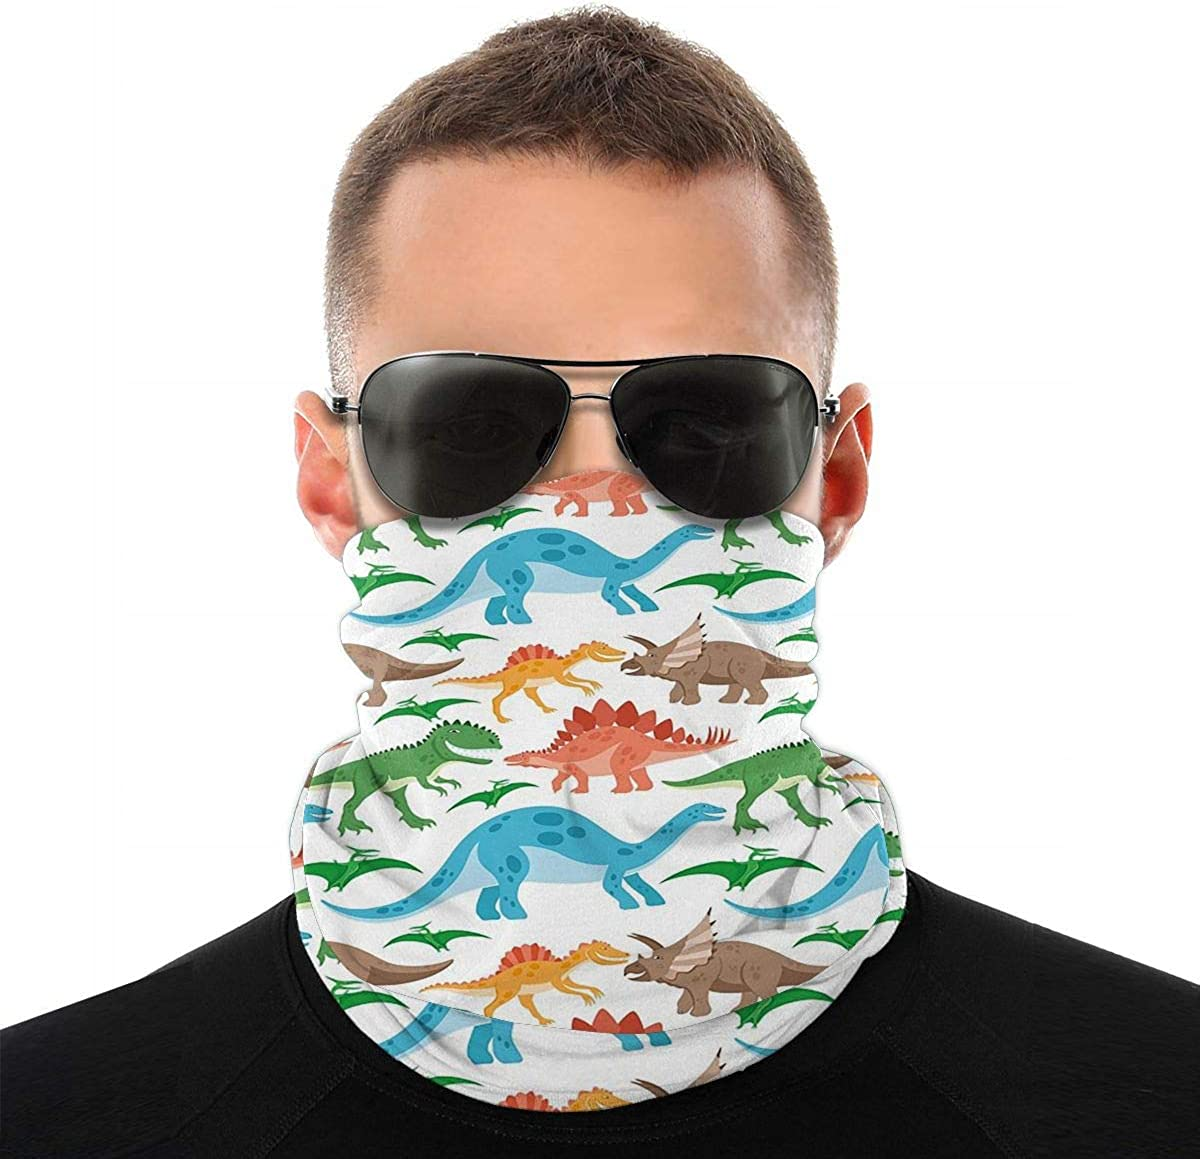 KiuLoam Colorful Dinosaurs Seamless Face Mask Bandanas Neck Gaiter for Men and Women, Multifunction Headband Scarf for Dust, Outdoors, Sports